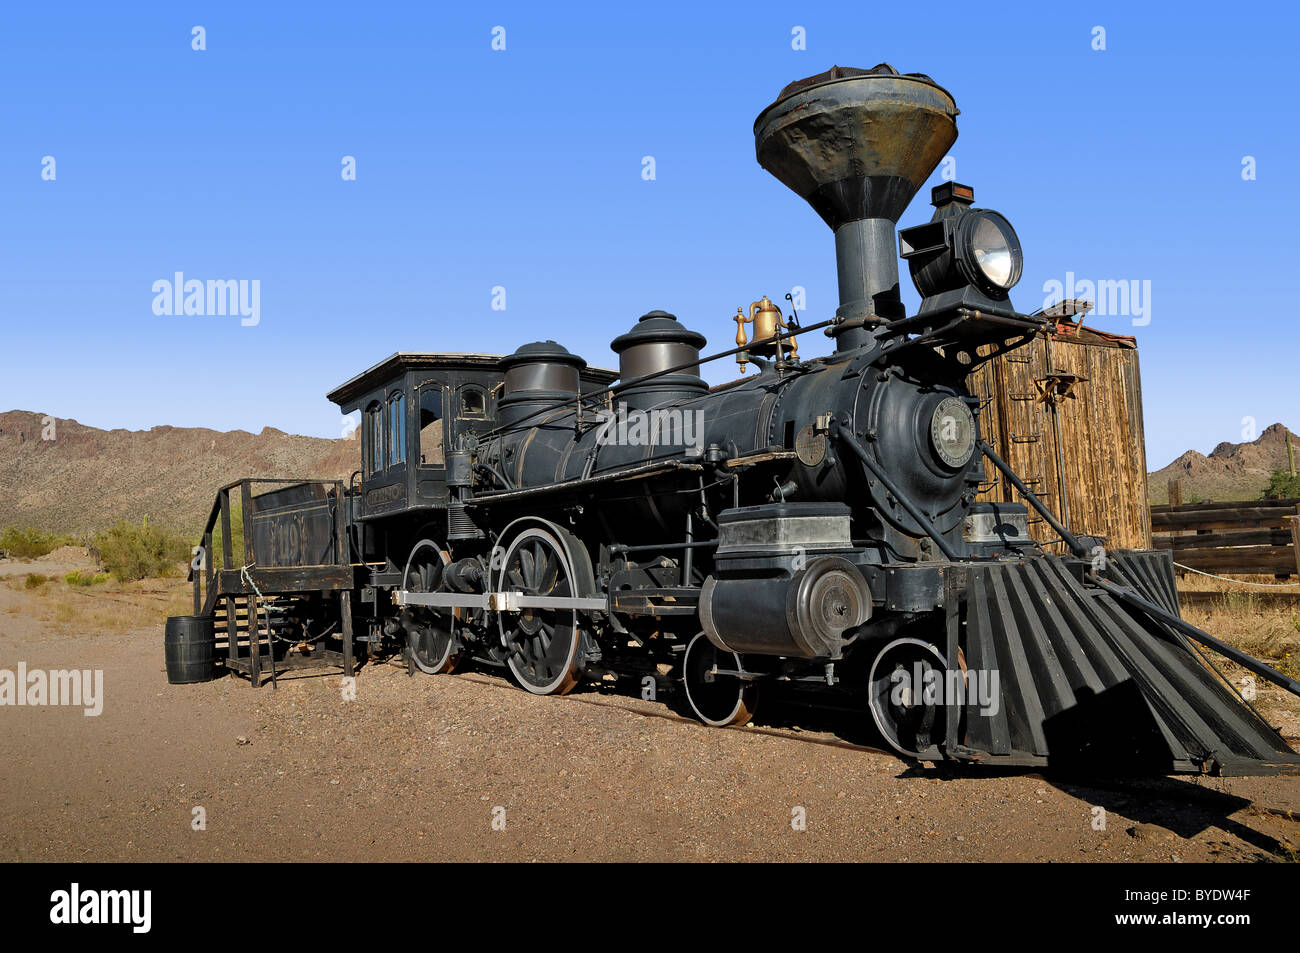 Old Western railway engine now reposed at The Old Film Studios situated near Tucson, Arizona, United States of America - Stock Image